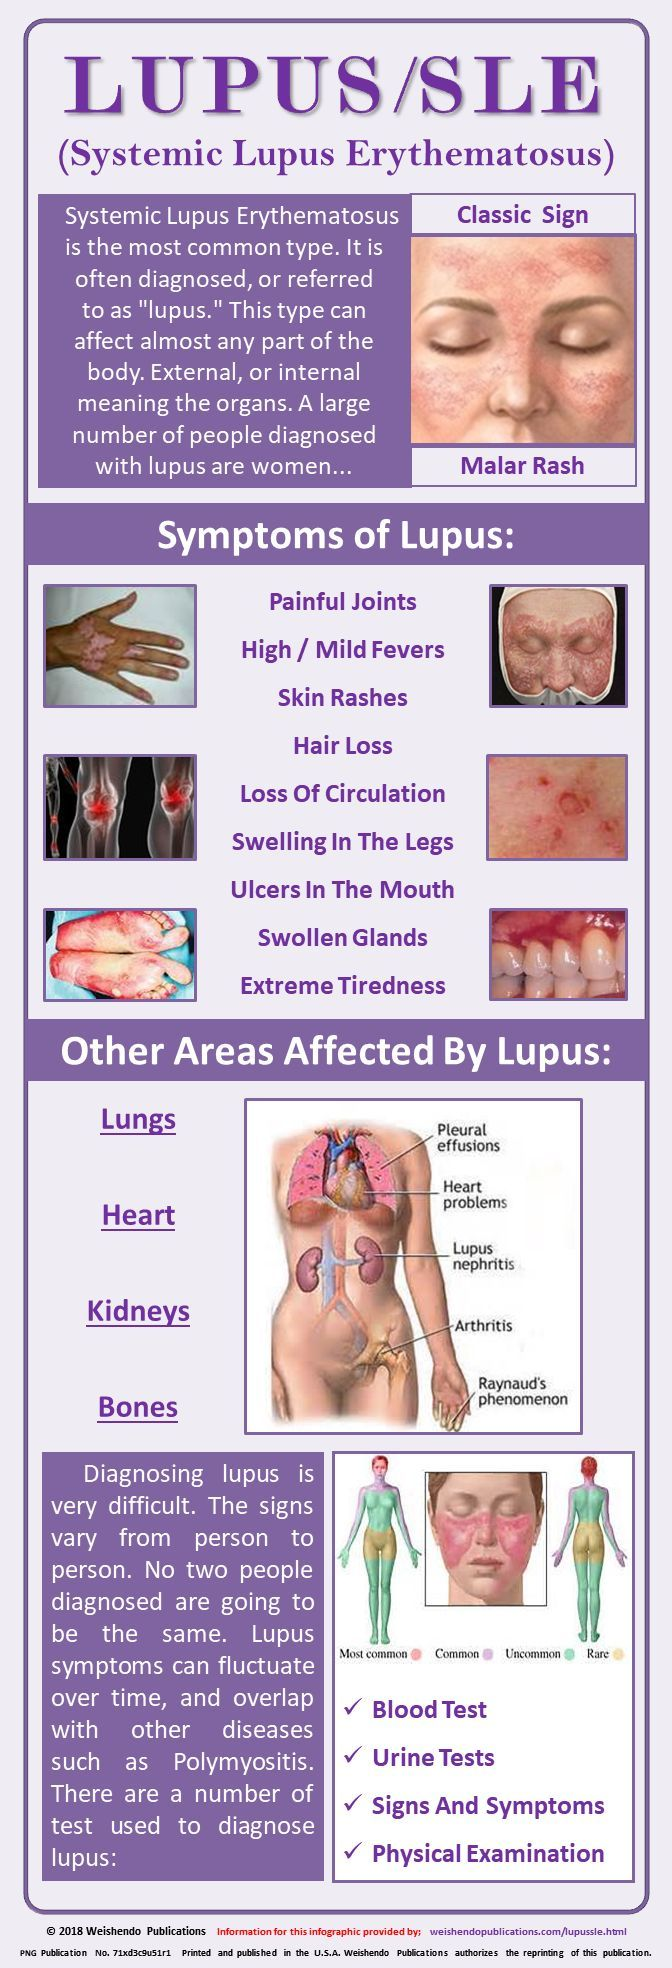 Systemic Lupus - Systemic lupus erythematosus is the most ...